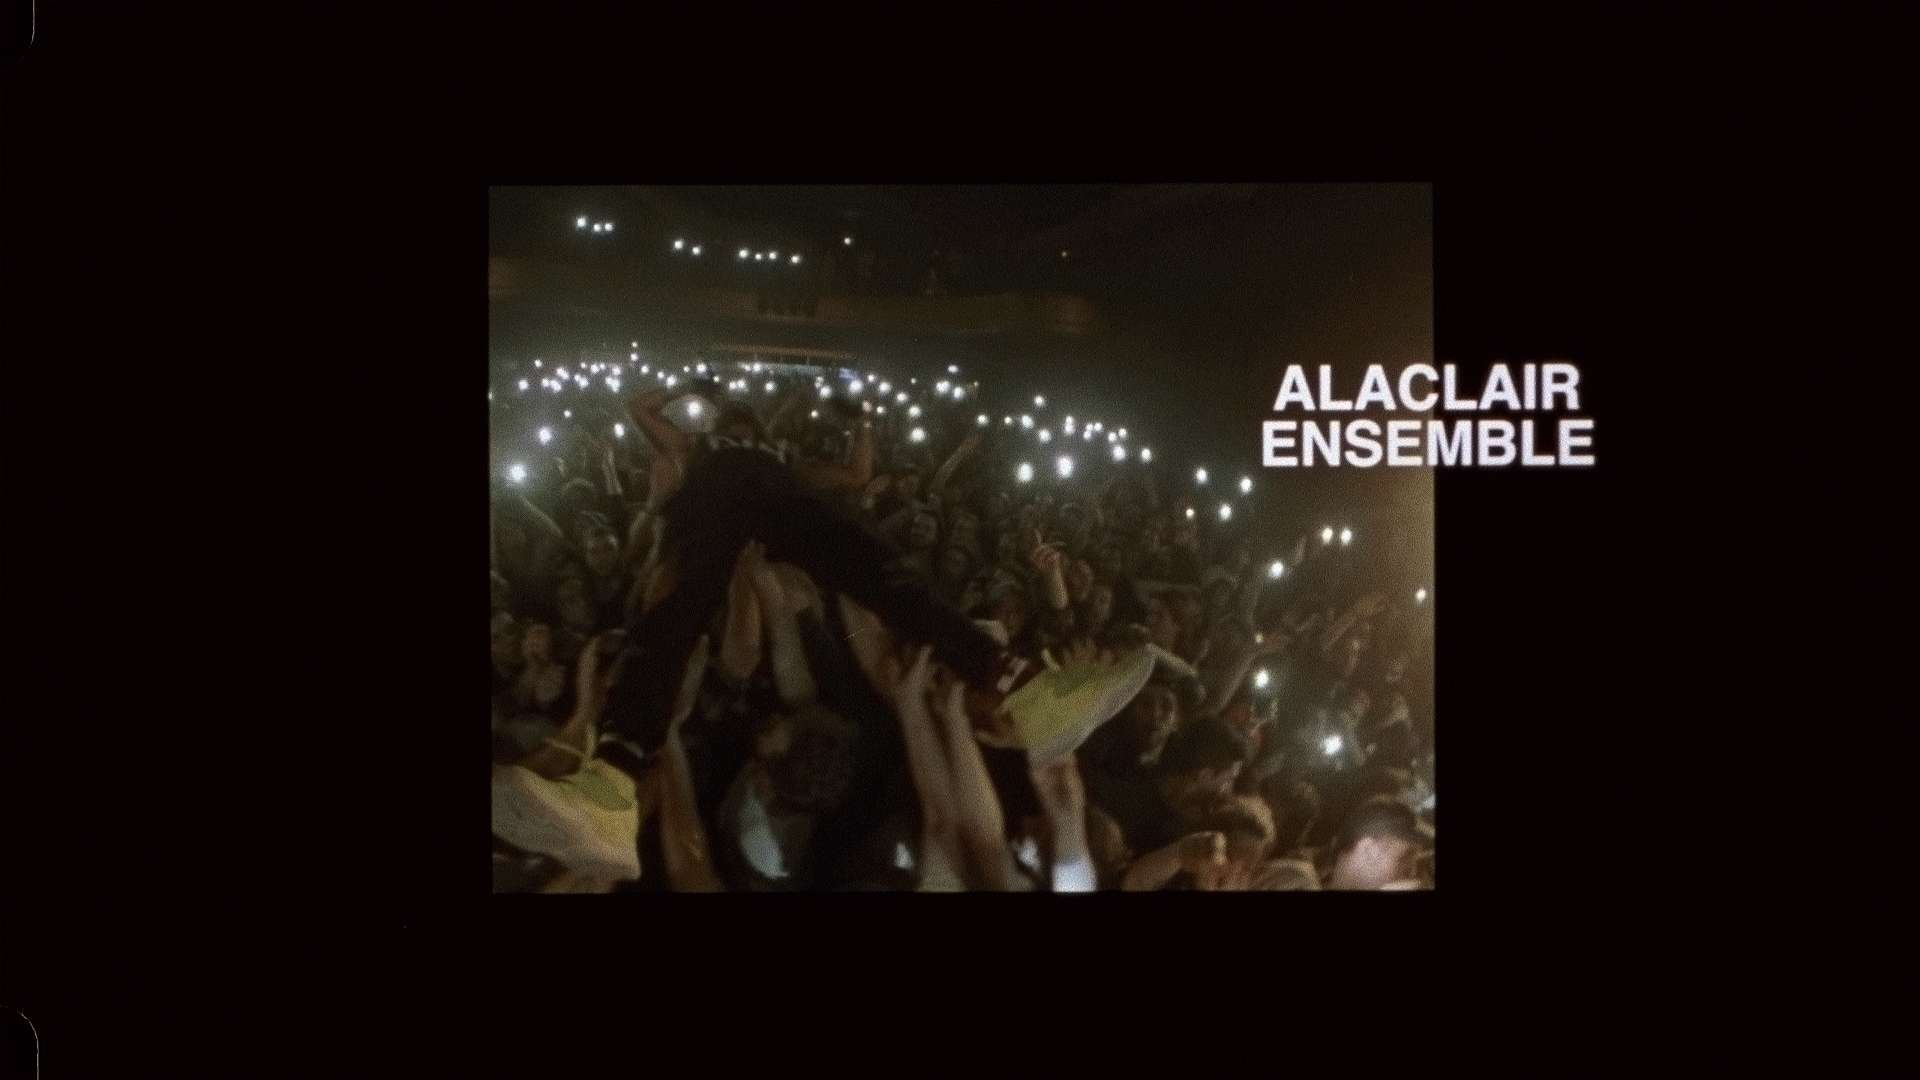 Alaclair Ensemble singer crowdsurfing while singing for L'Osstidfilm documentary filmed by Vincent Ruel-Cote from Les Gamins about L'Osstidtour